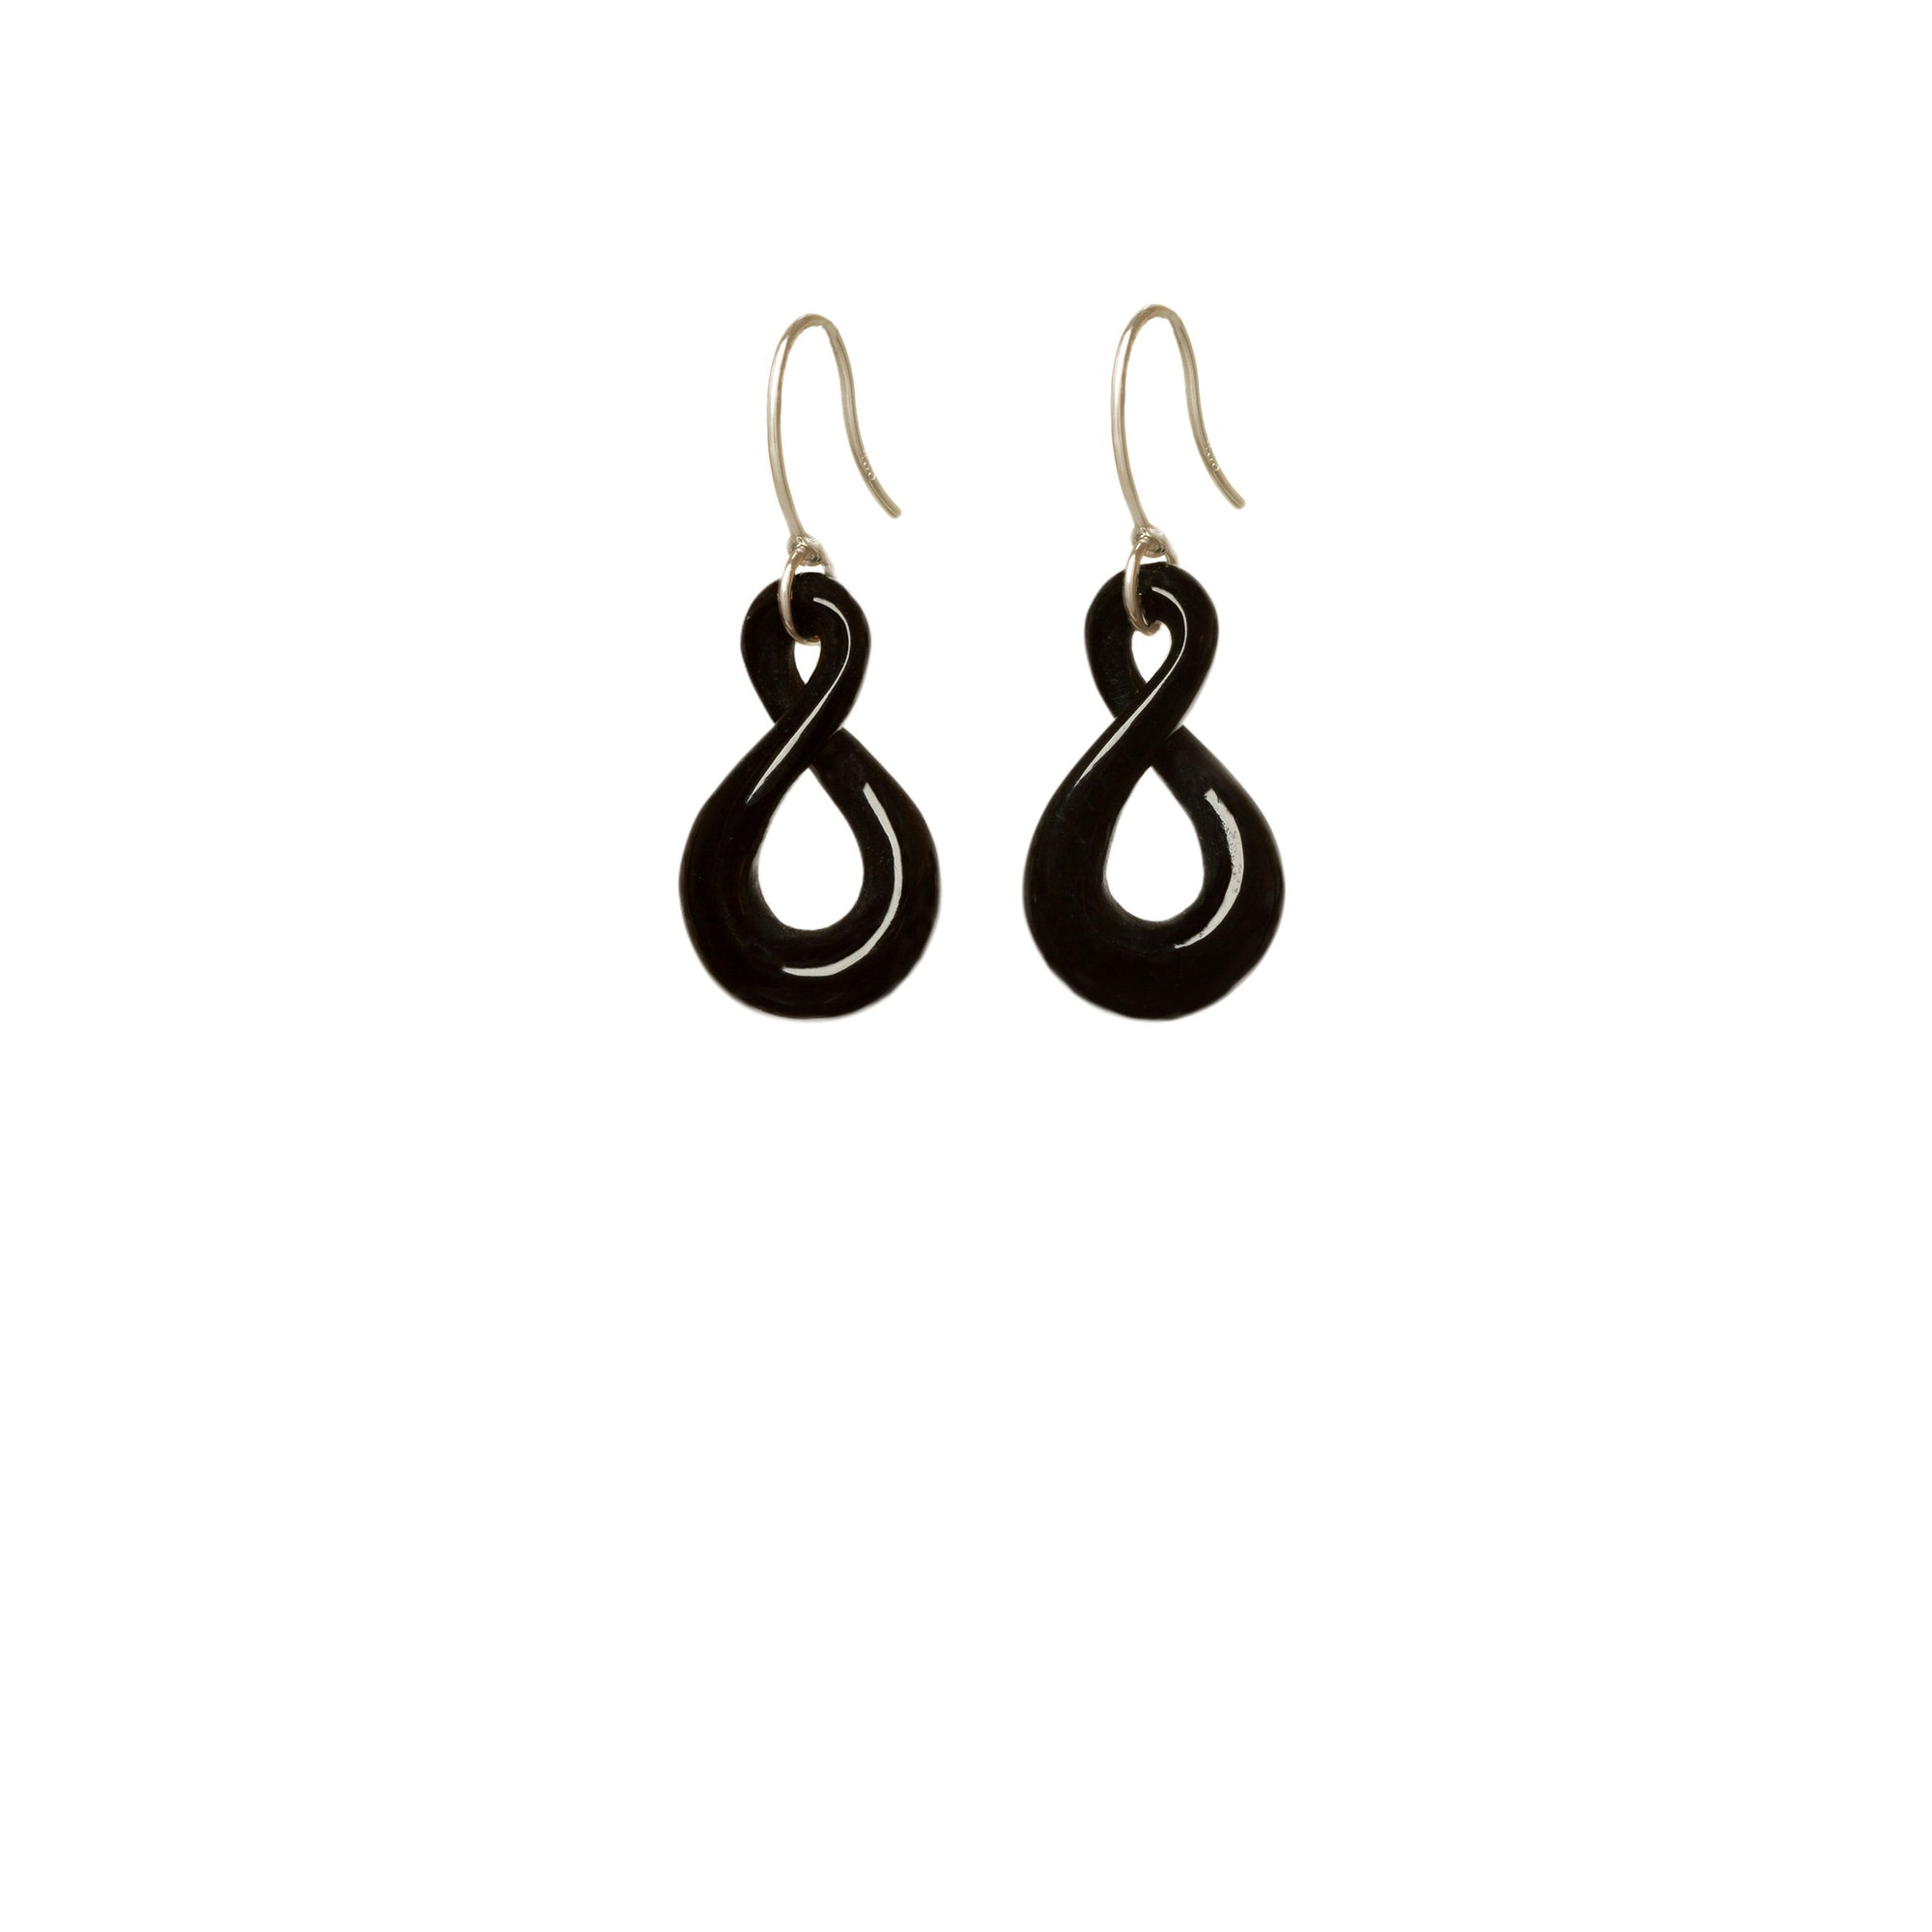 Australian Black Jade Open Twist Earrings